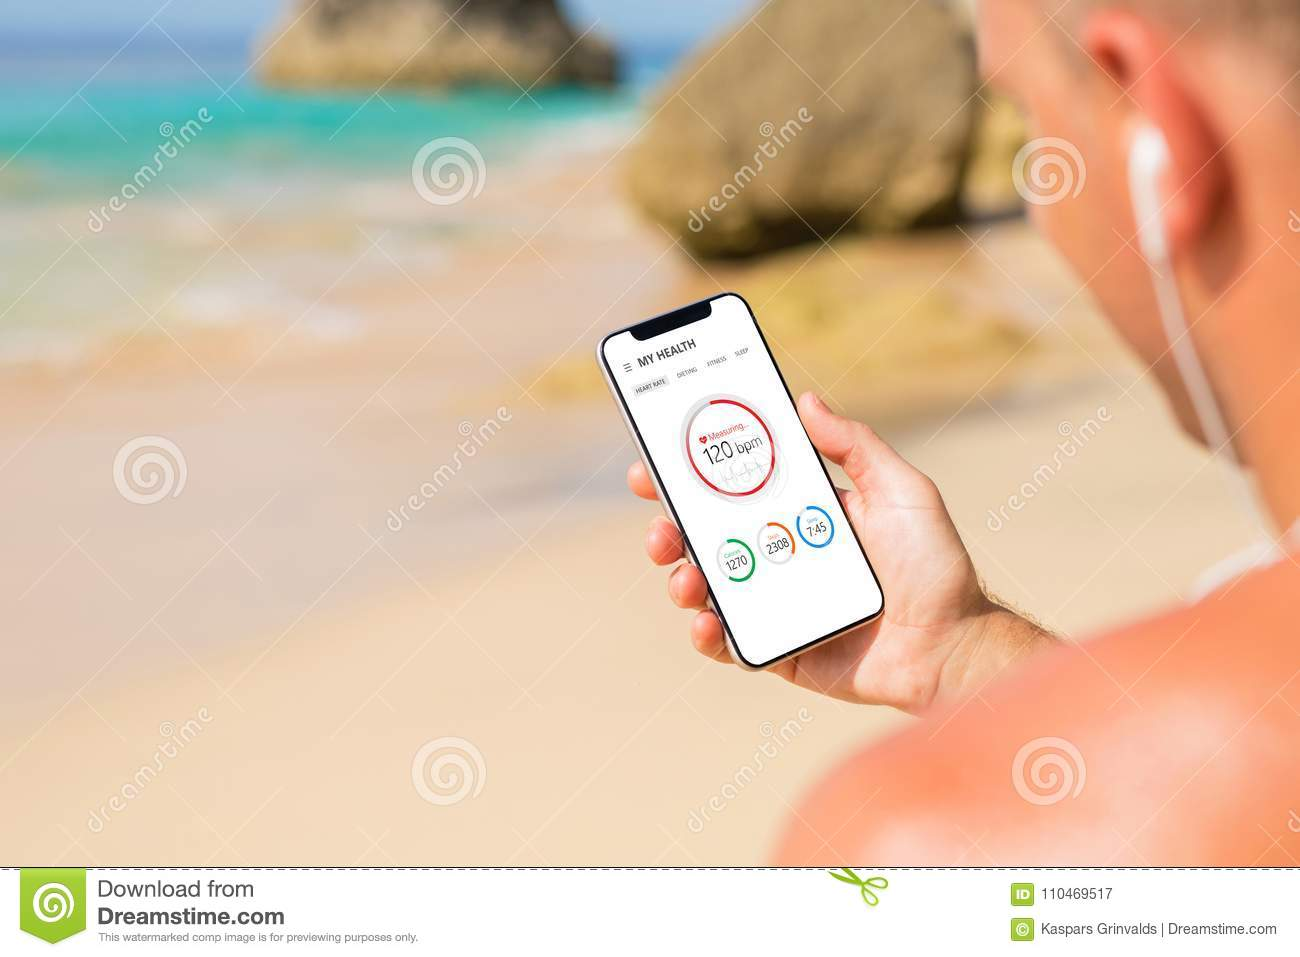 Man Using Health App On His Phone Stock Image - Image of smartphone